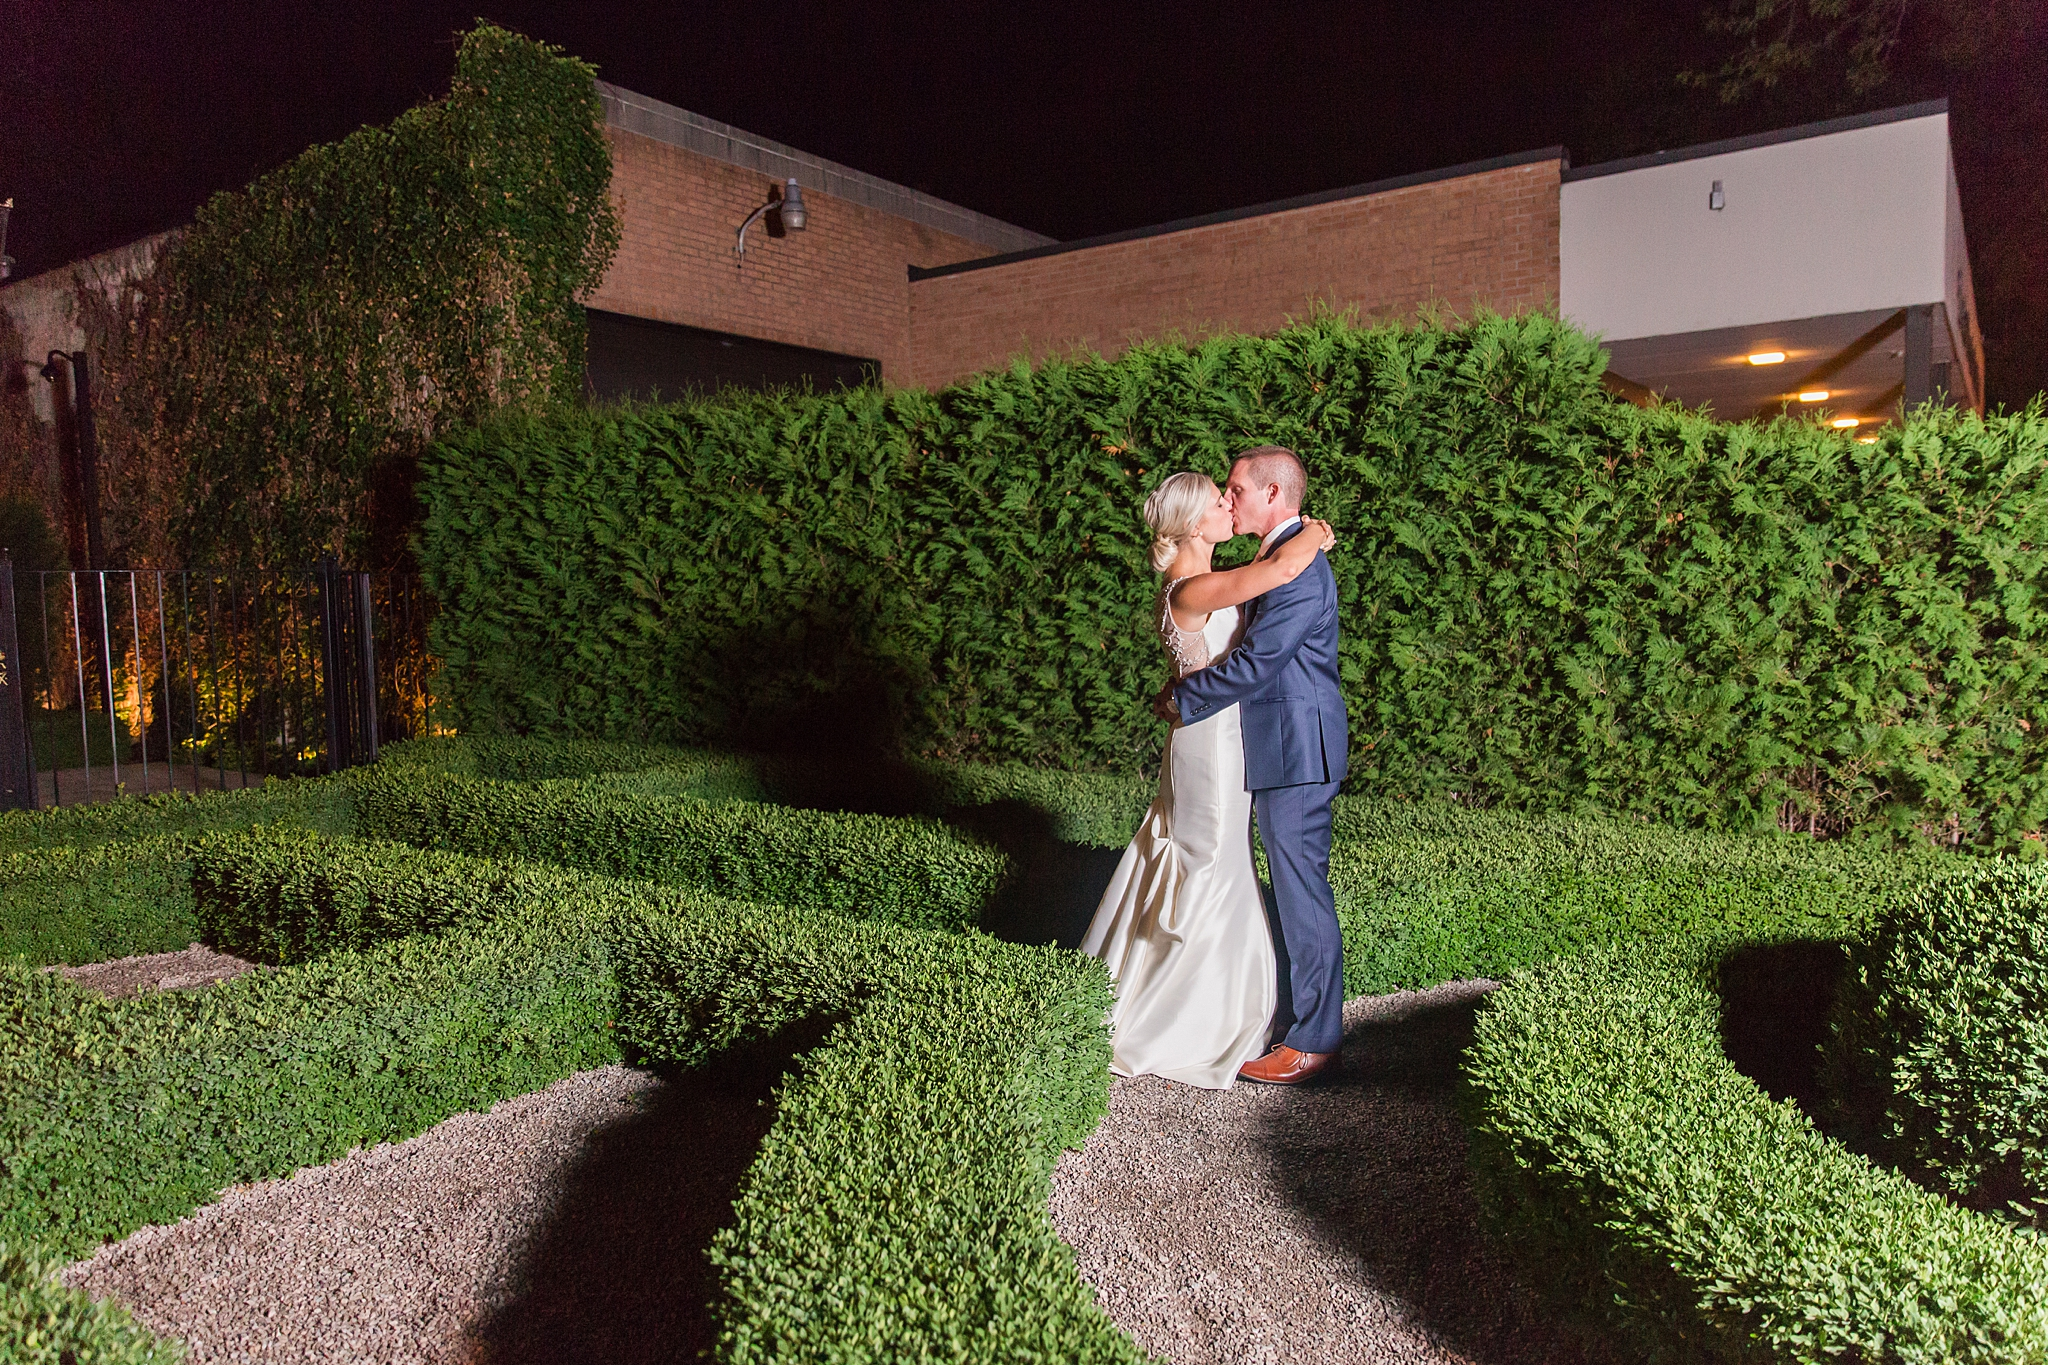 chapman-house-casually-chic-wedding-photography-in-rochester-michigan-by-courtney-carolyn-photography_0066.jpg